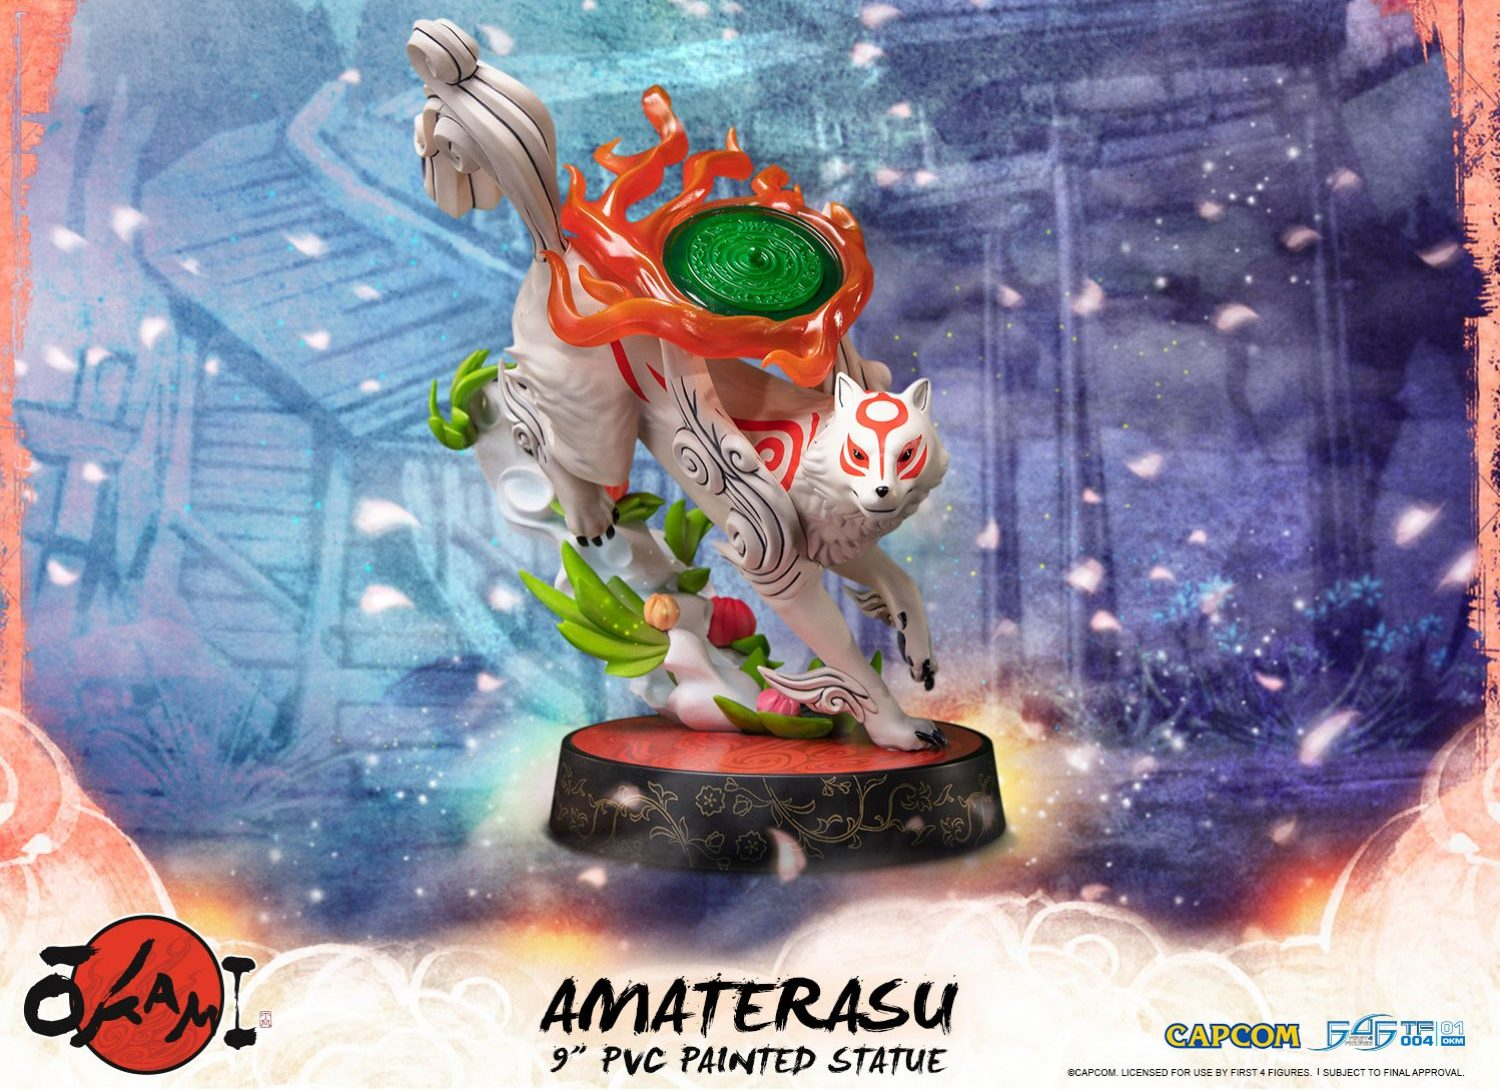 This Beautiful Okami Statue Is Now Available for Pre Order